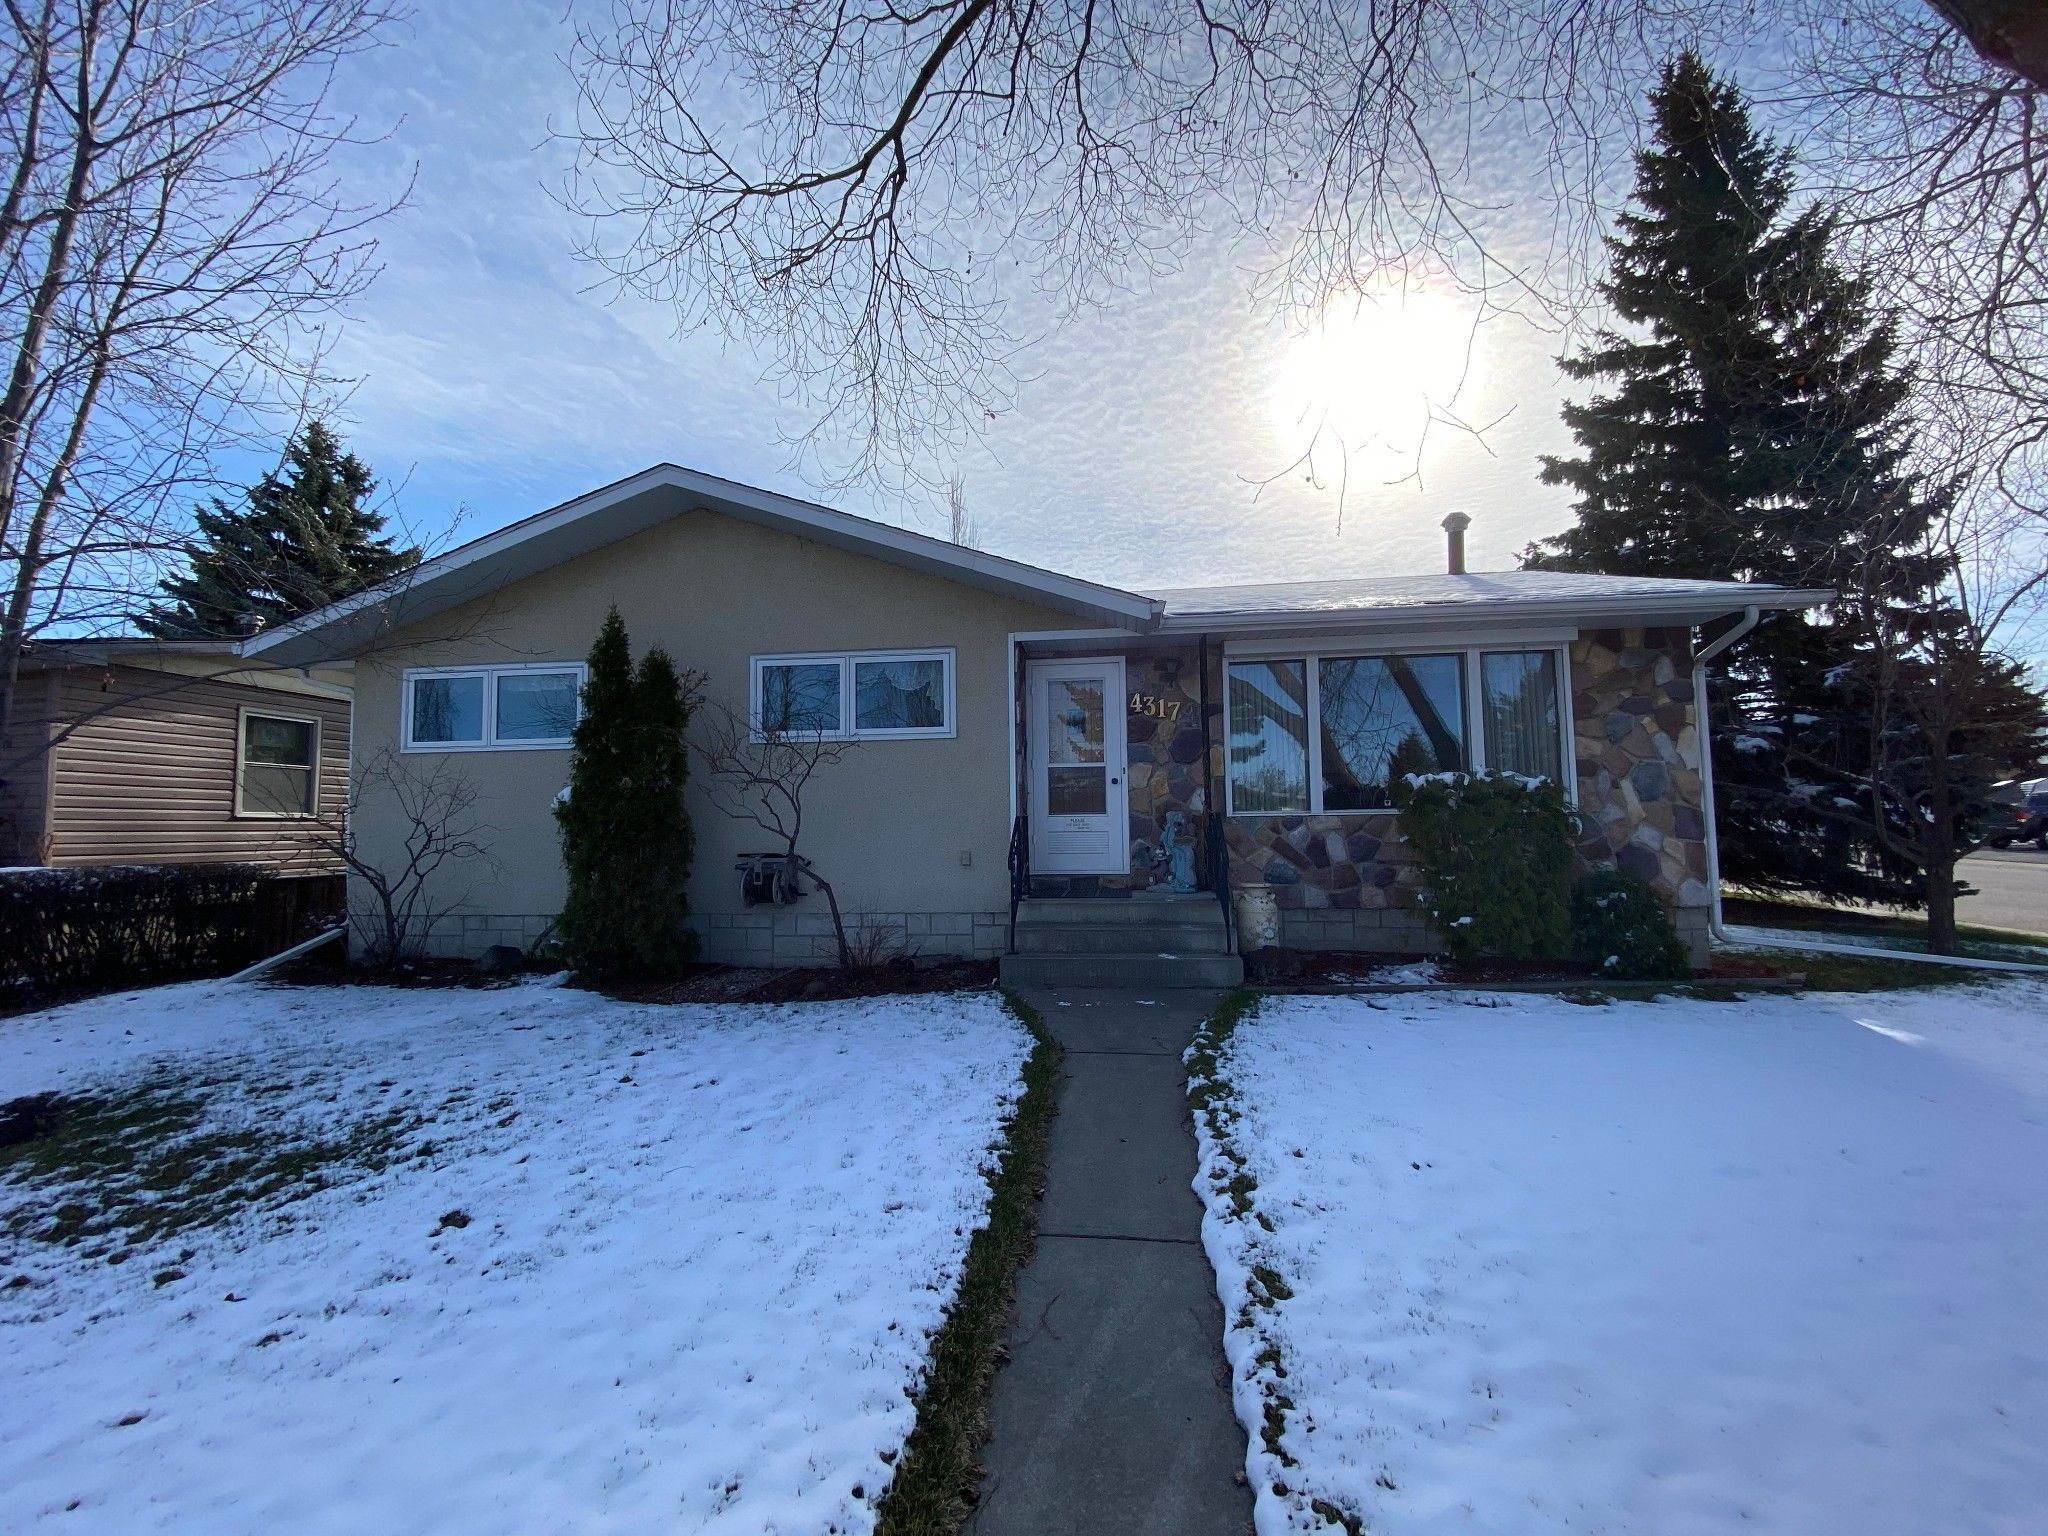 Main Photo: 4317 Shannon Drive in Olds: House for sale : MLS®# A1097699